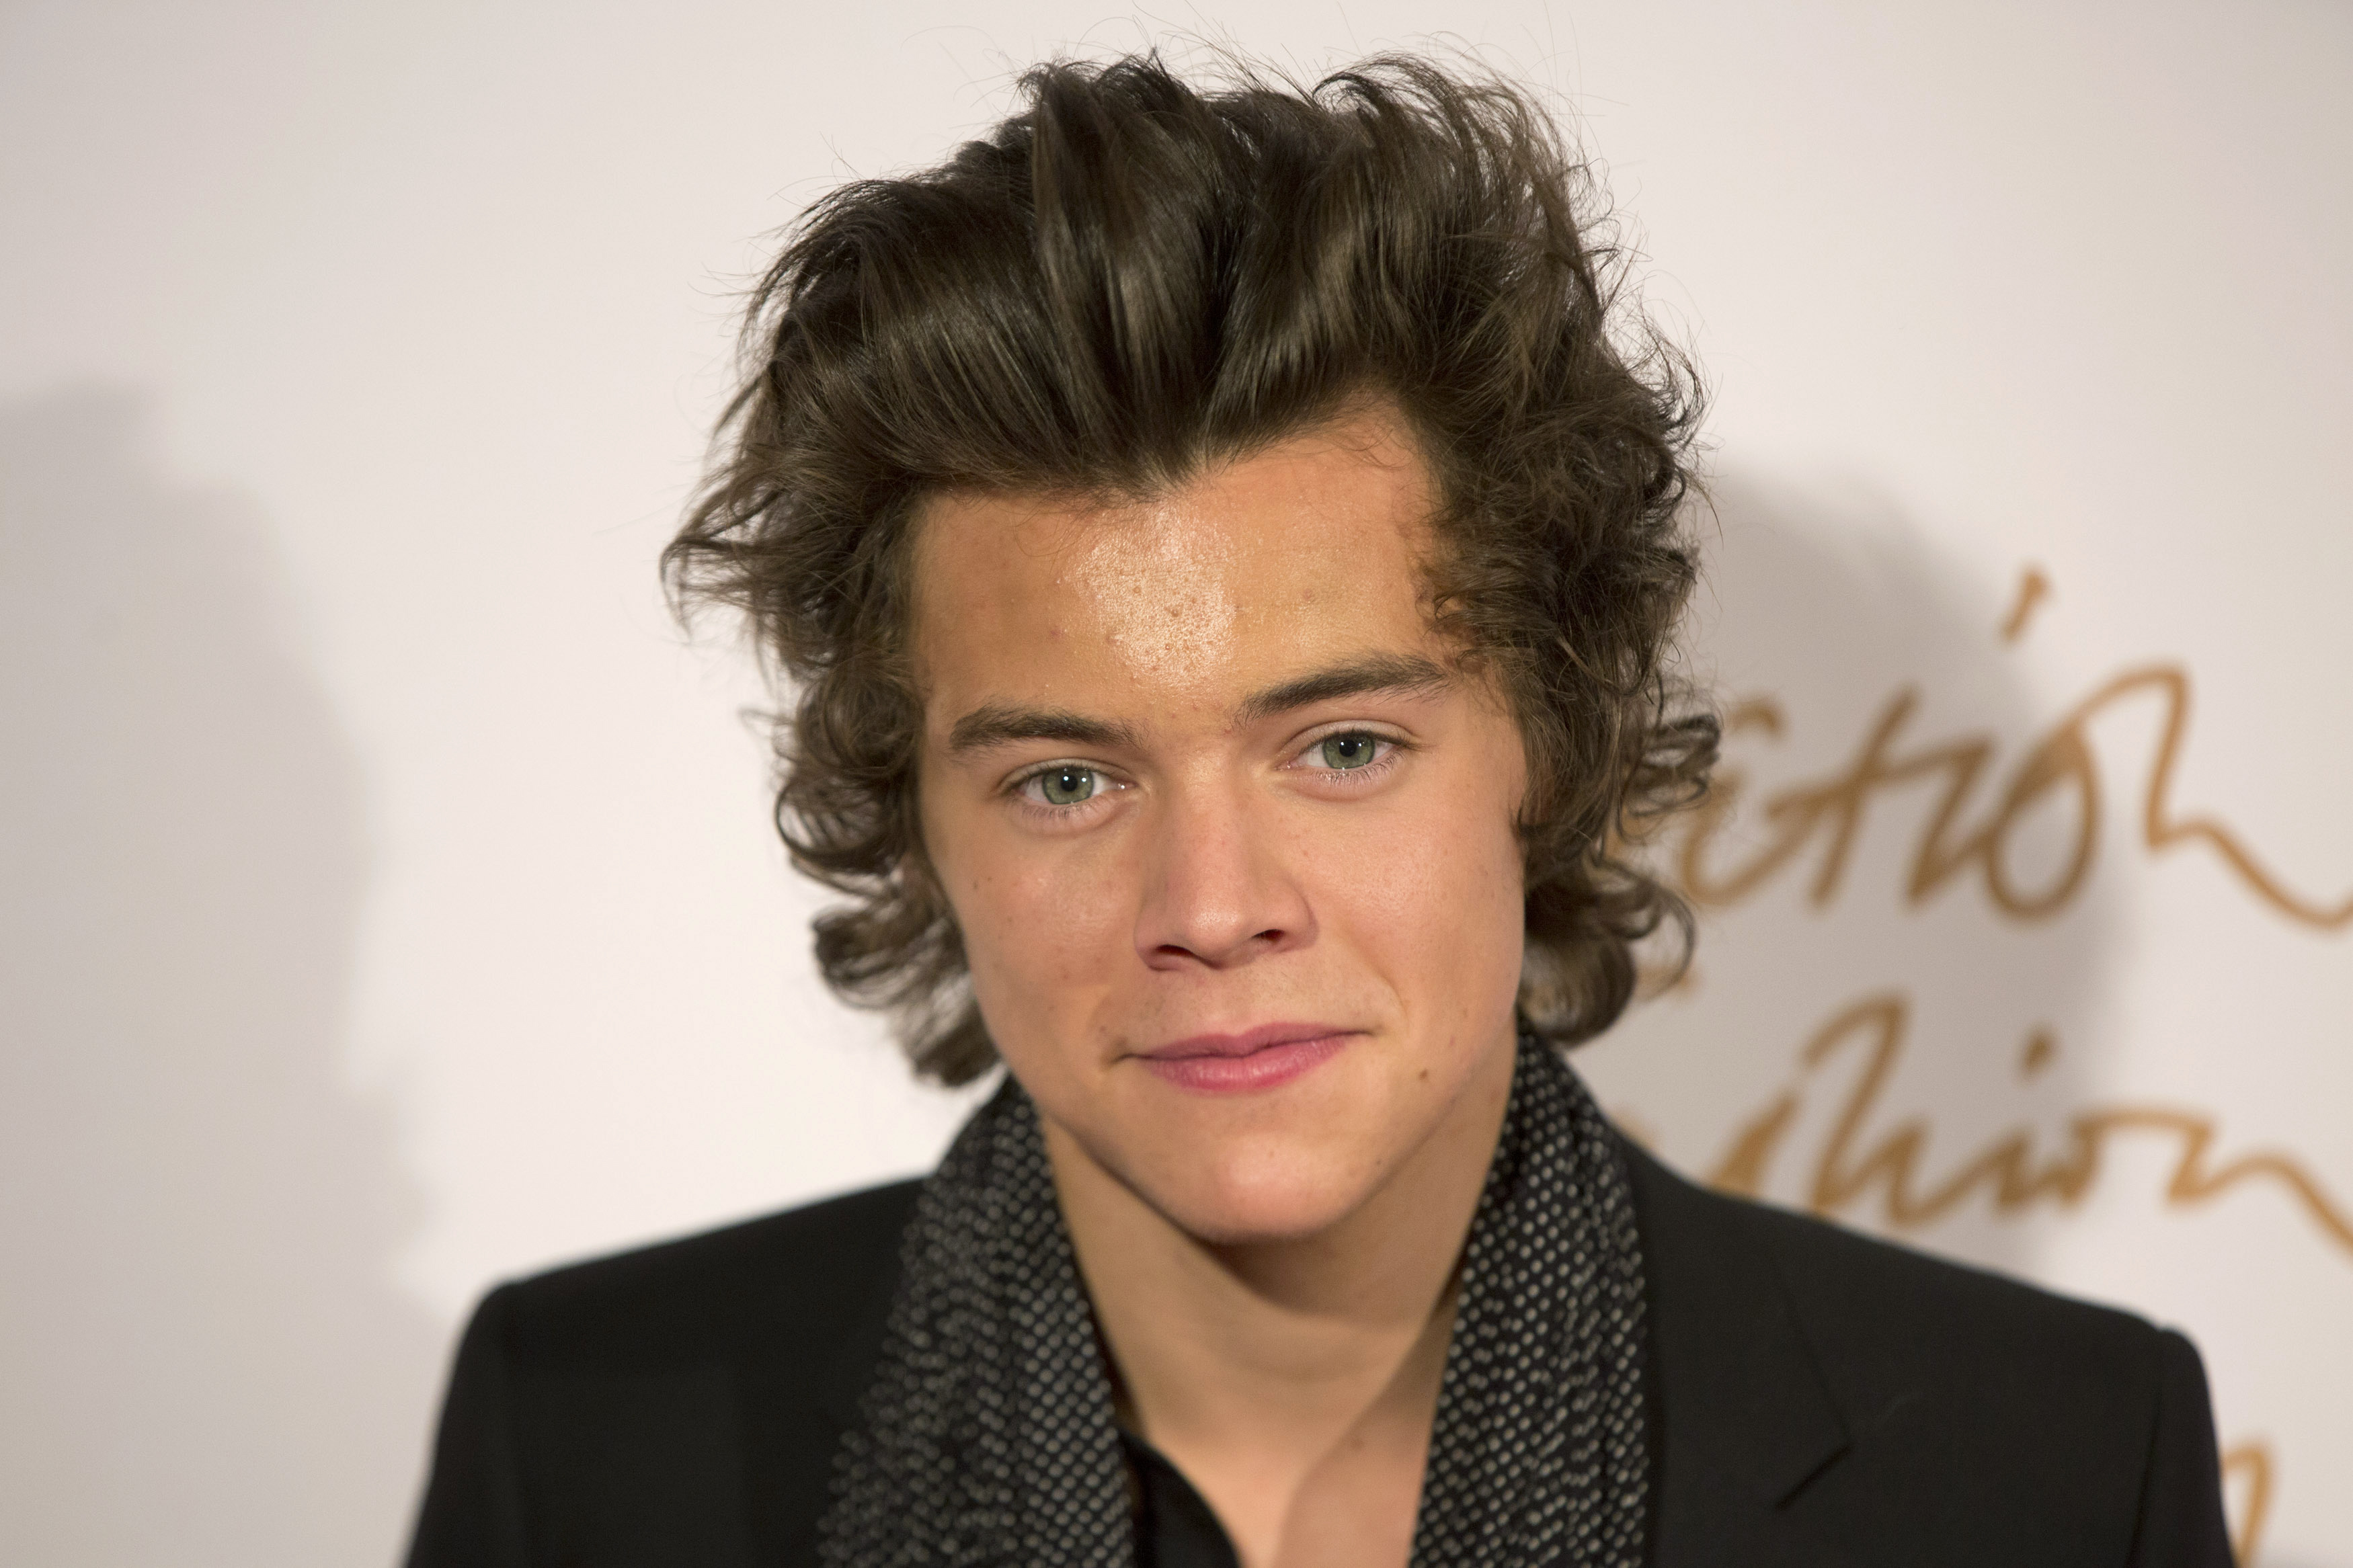 Everything About Harry From One Direction Harry Styles